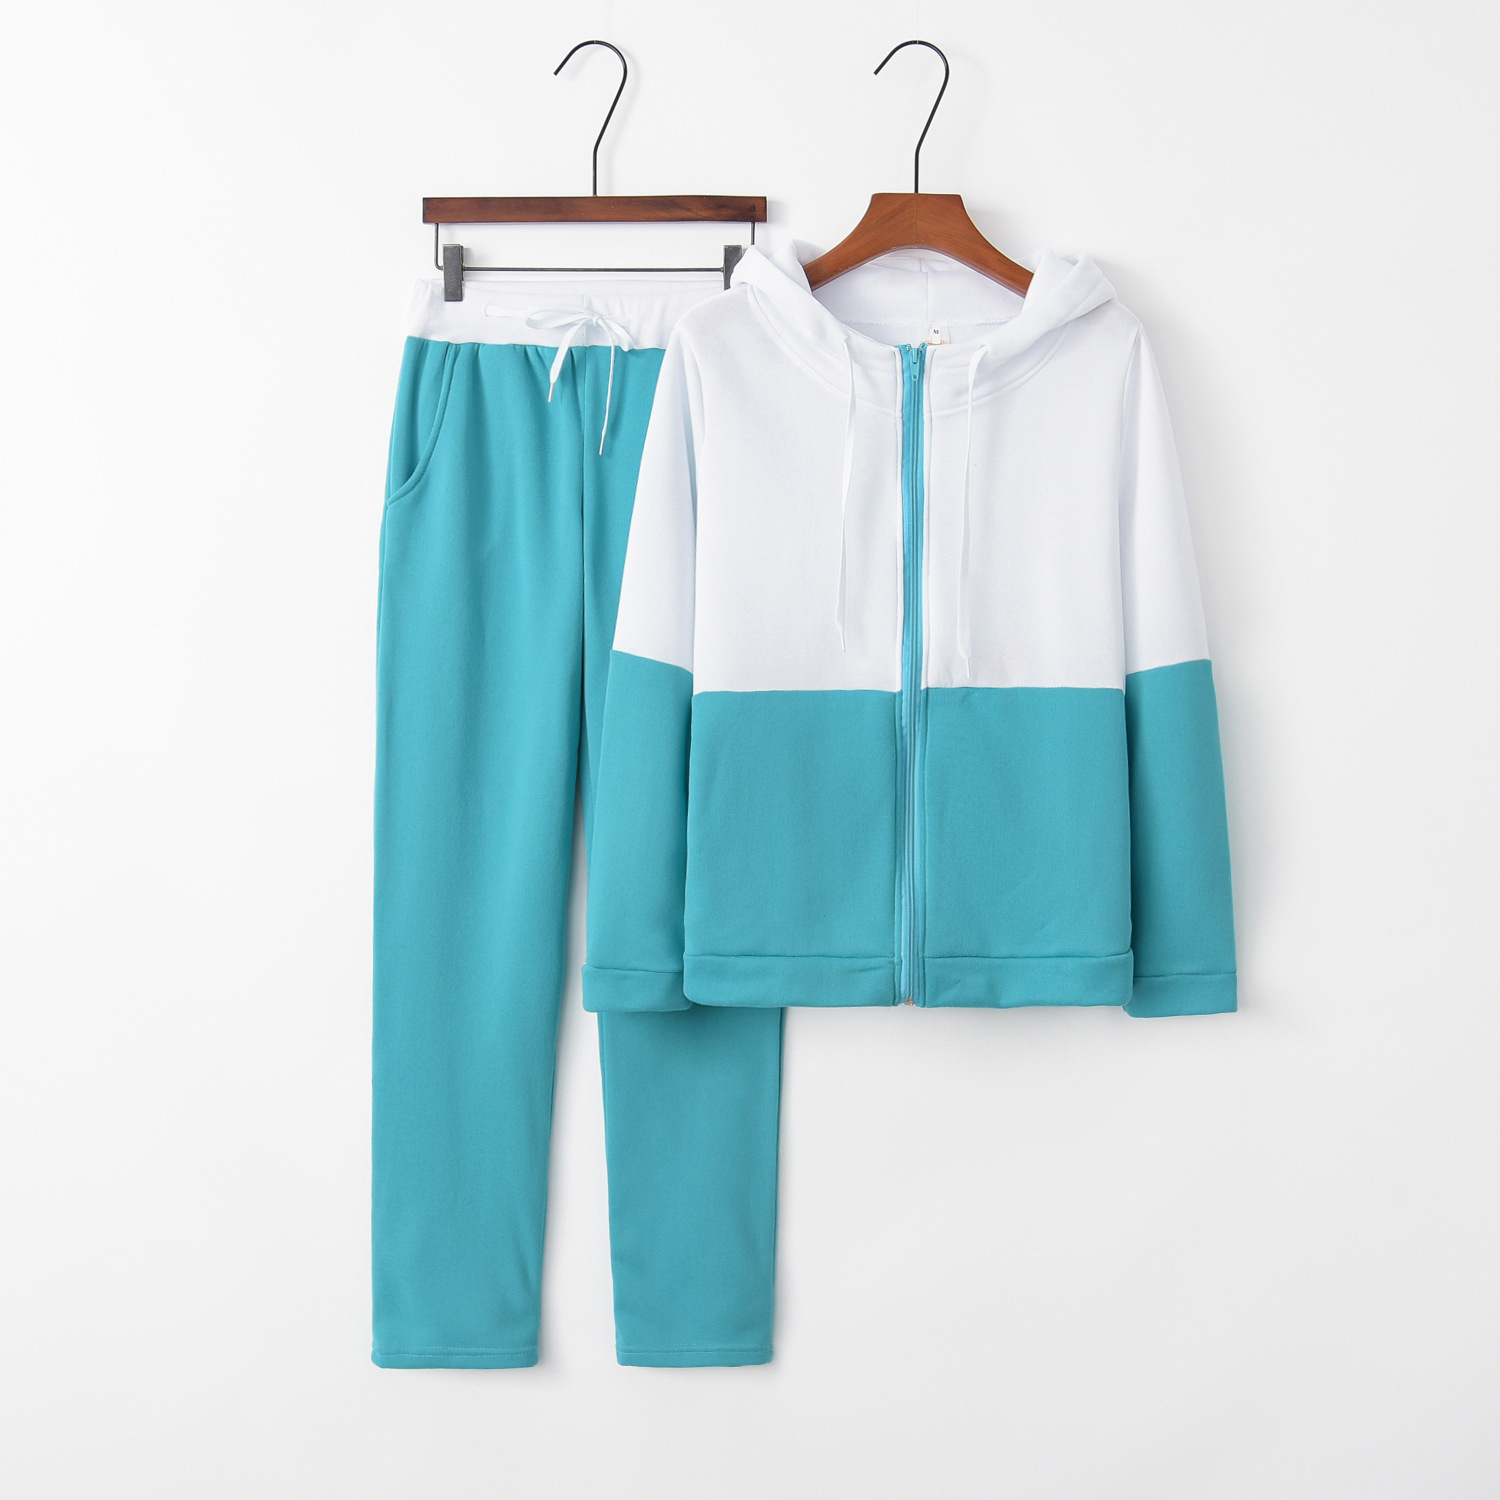 Green outfit tracksuit sportswear for women hoodies Two Piece Set Top And Pant suit co-ord Sweat Casual female Clothes 2019 2PCS